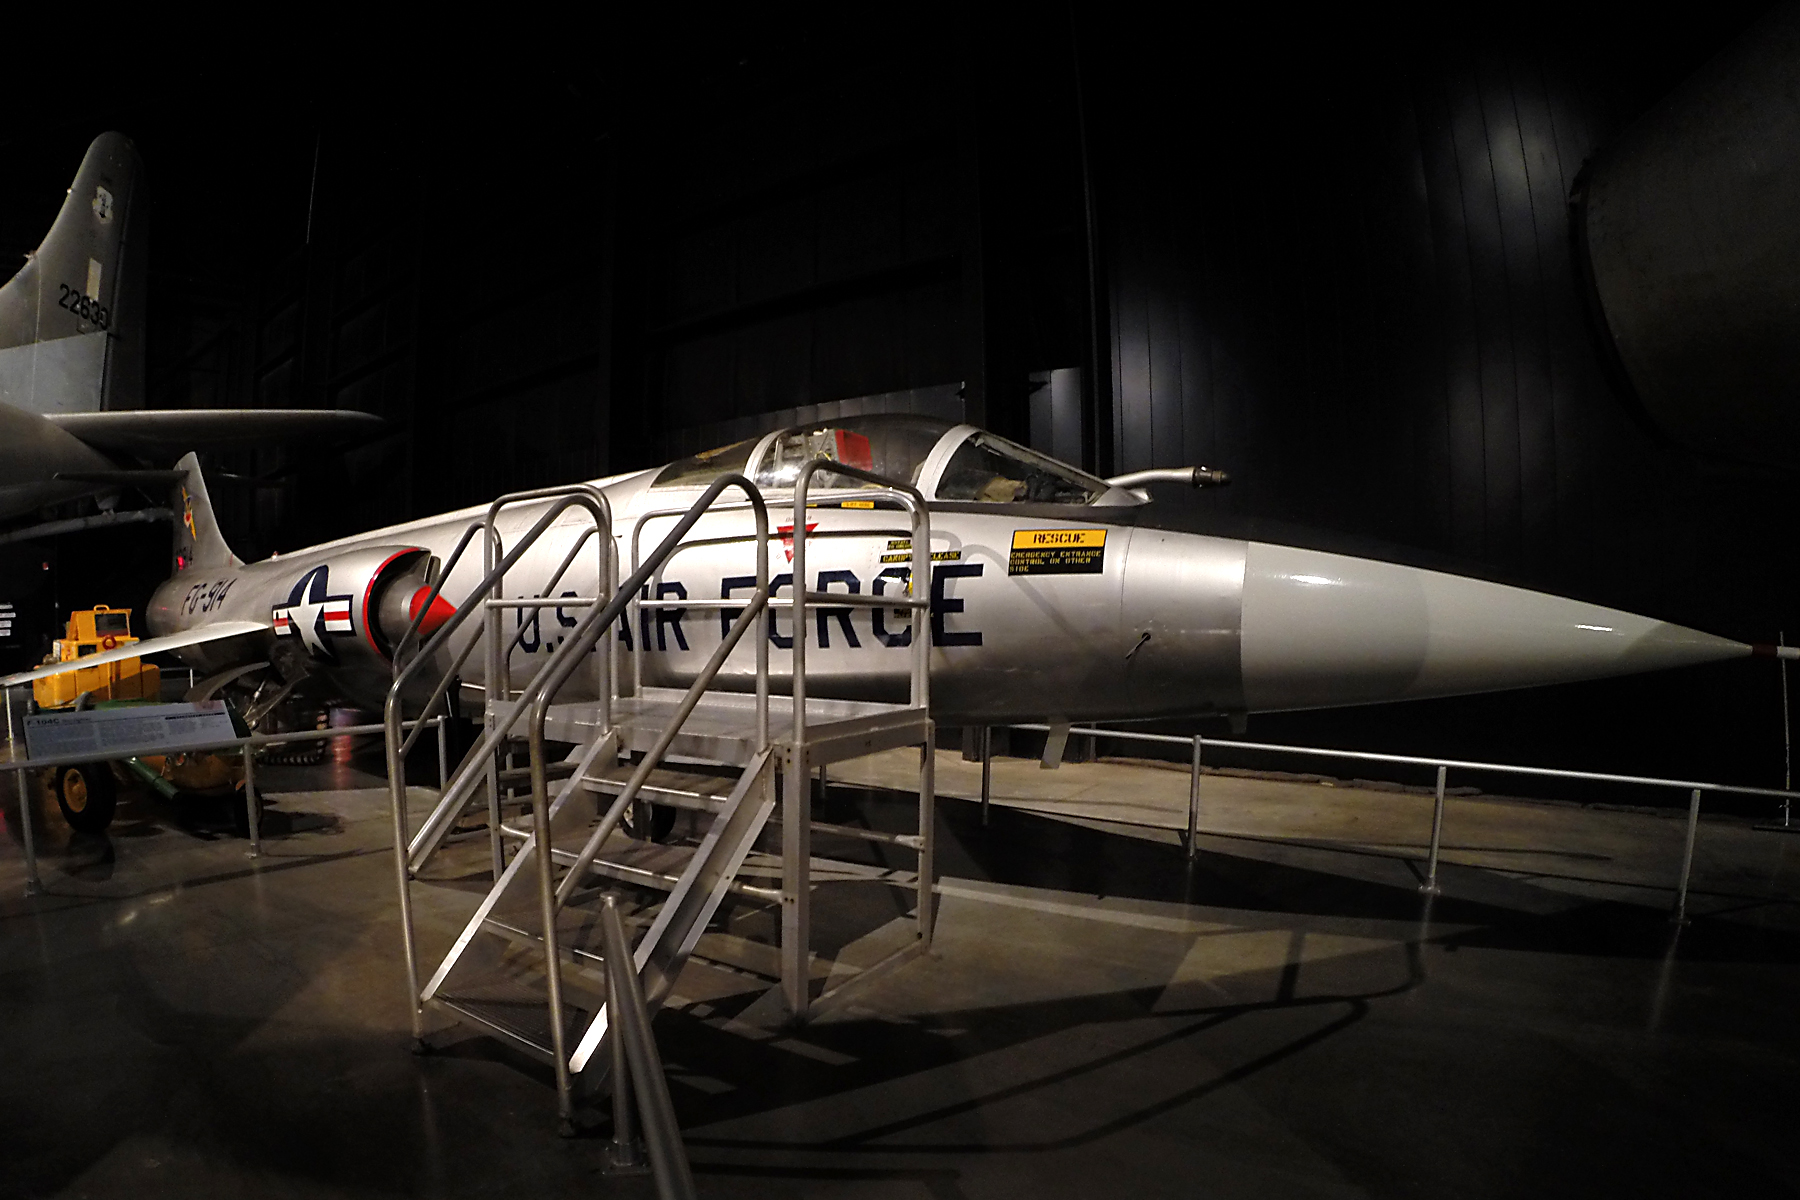 lockheed f 104c starfighter national museum of the us air force display. Black Bedroom Furniture Sets. Home Design Ideas